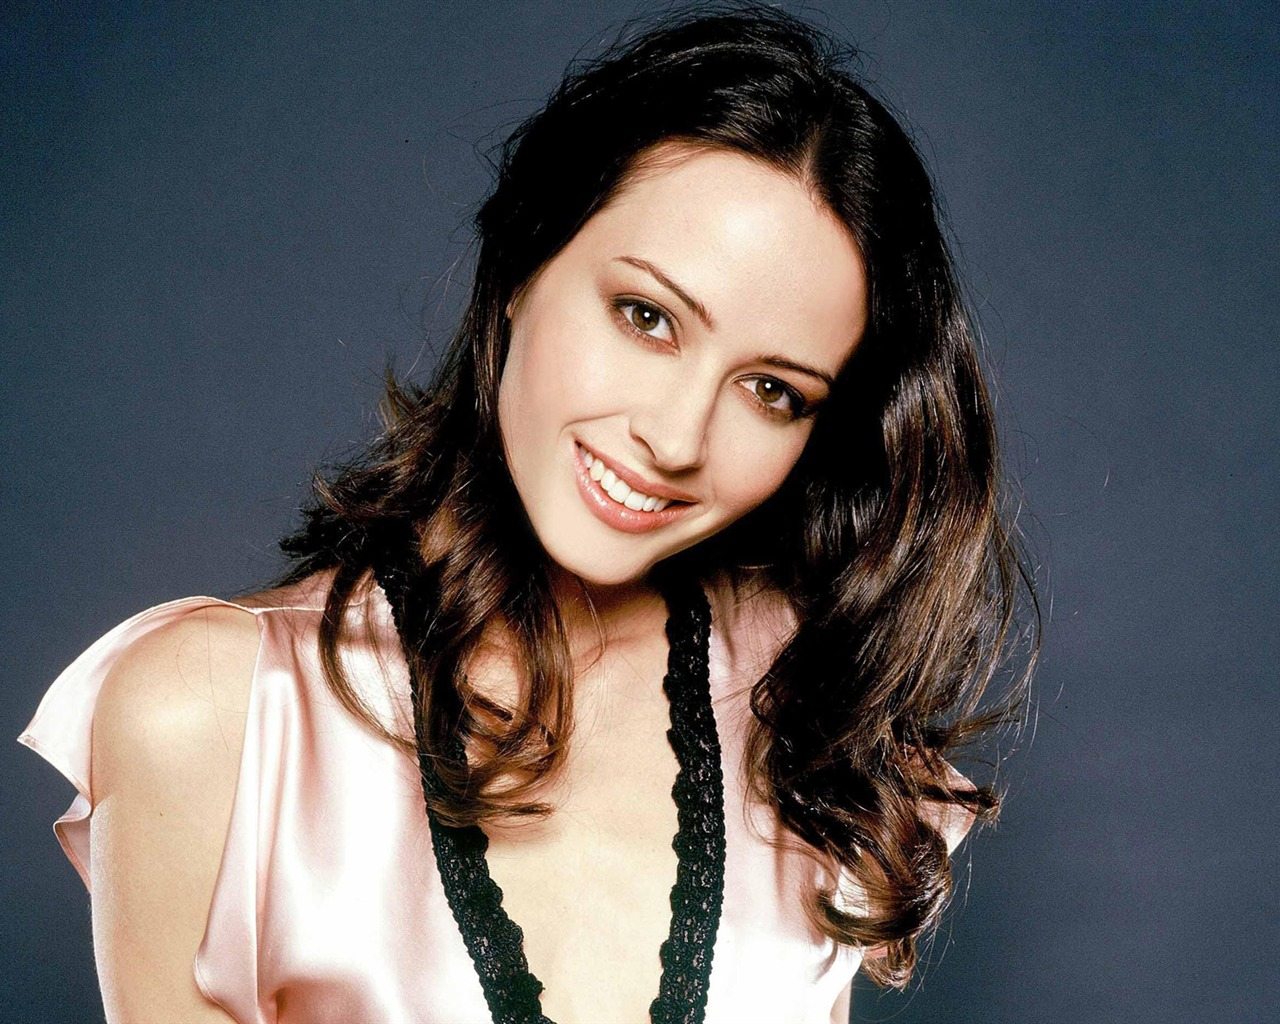 Amy Acker #016 - 1280x1024 Wallpapers Pictures Photos Images